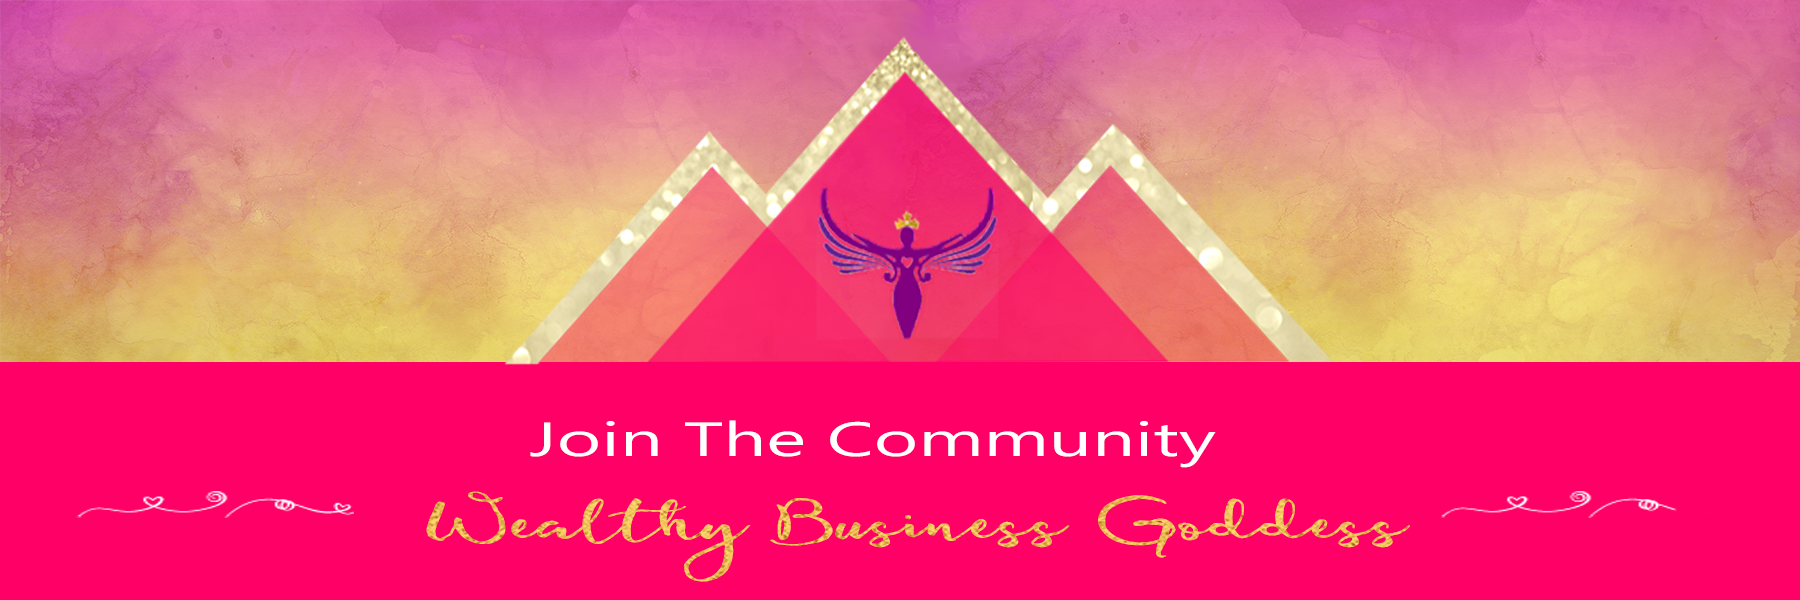 Wealthy Business Goddess Facebook Group Community